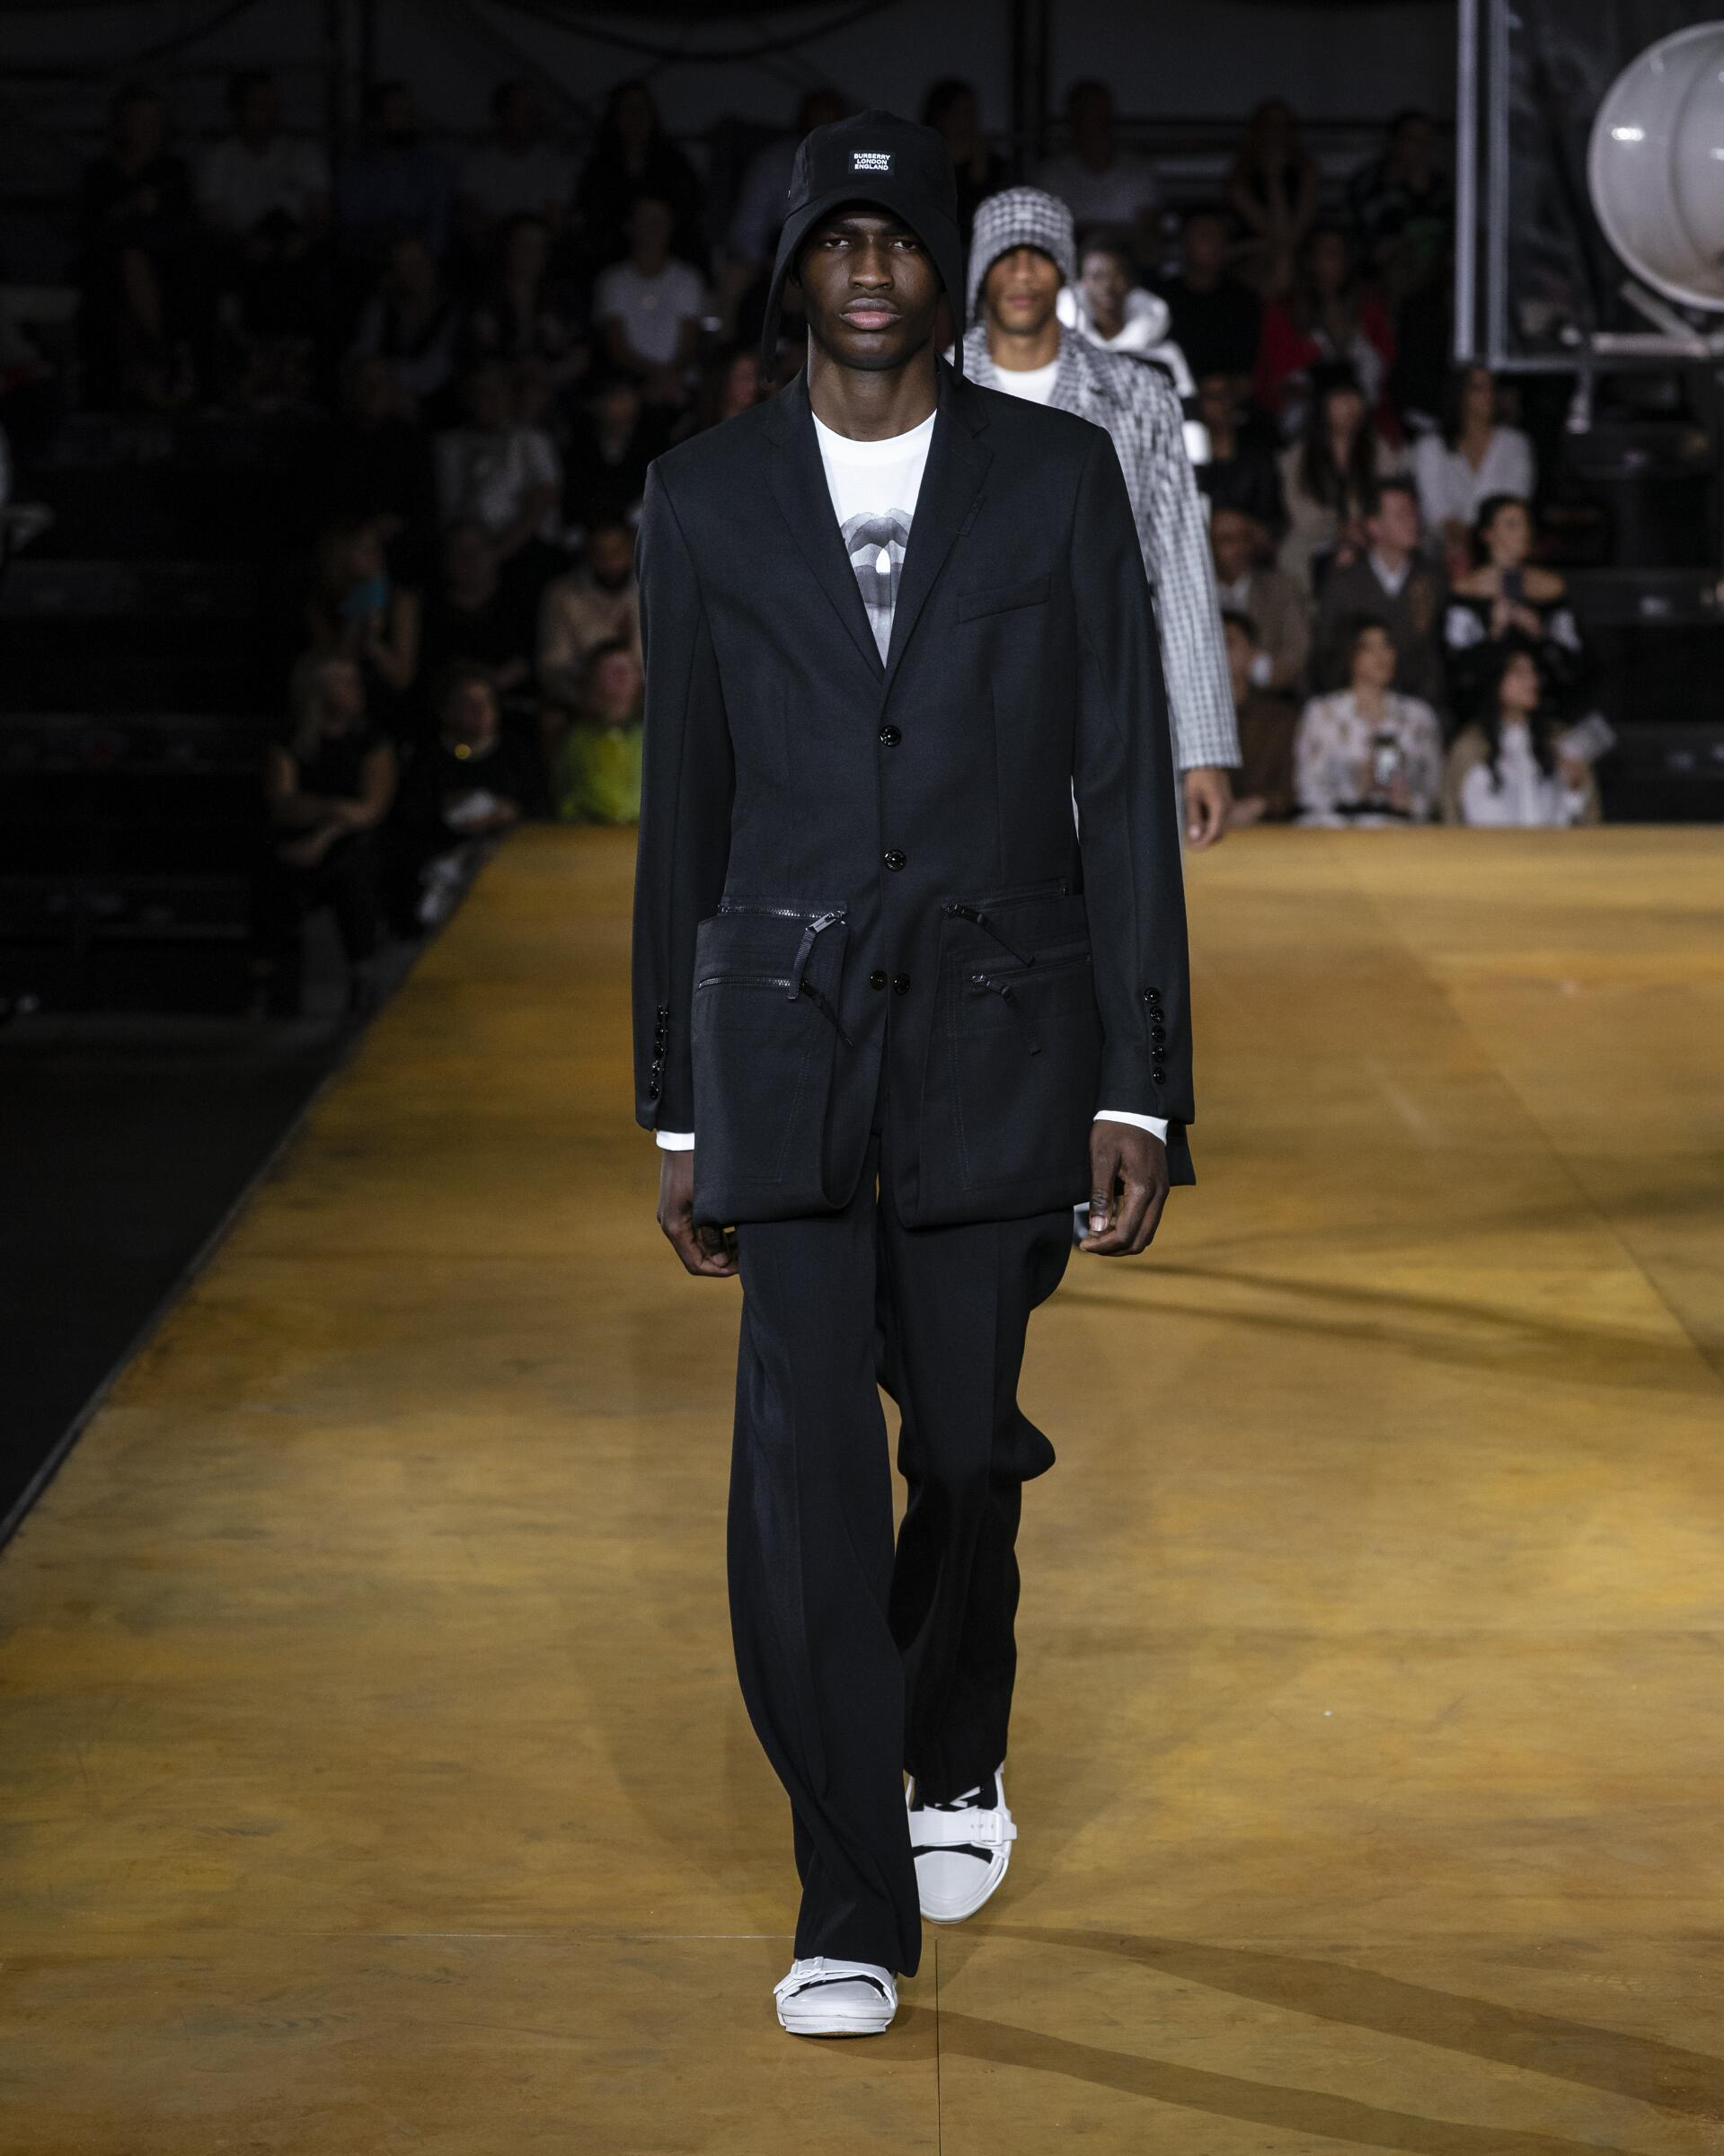 Man SS 2020 Burberry Show London Fashion